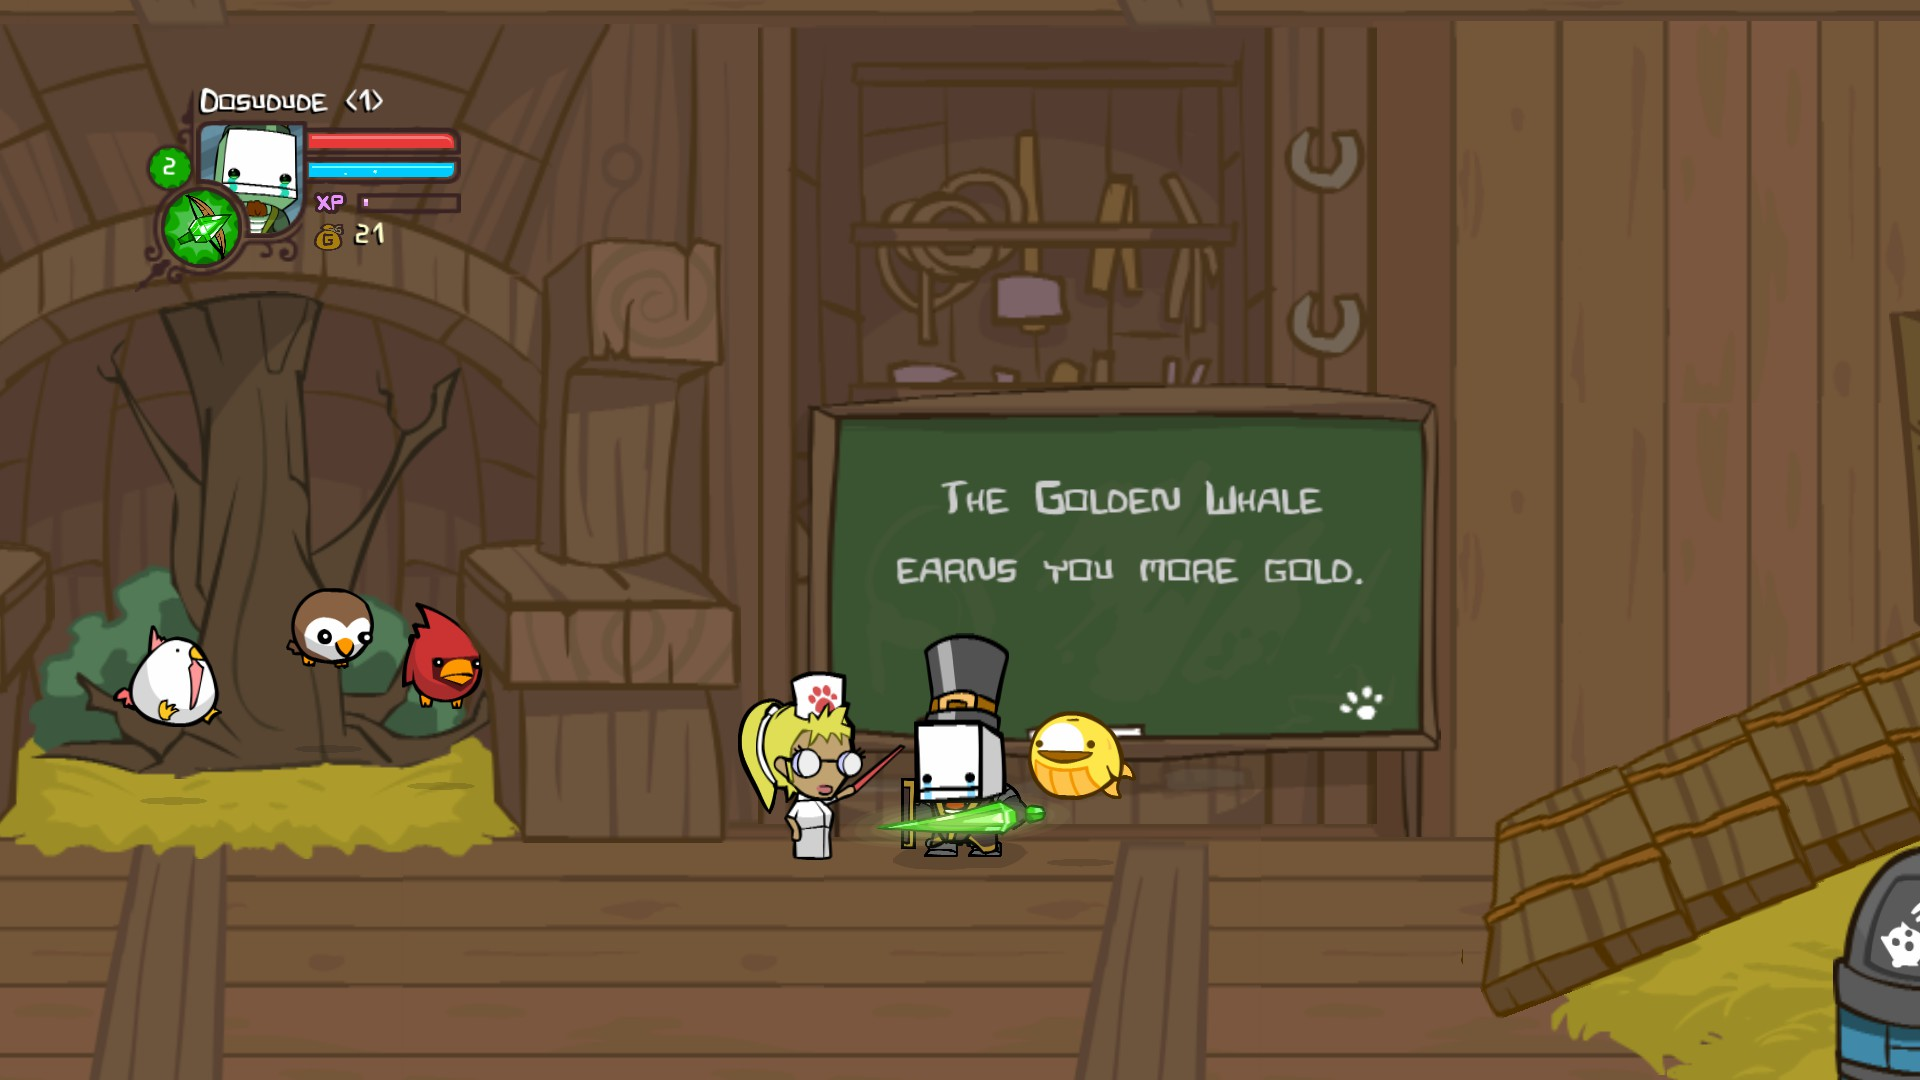 how to get the golden whale in castle crashers